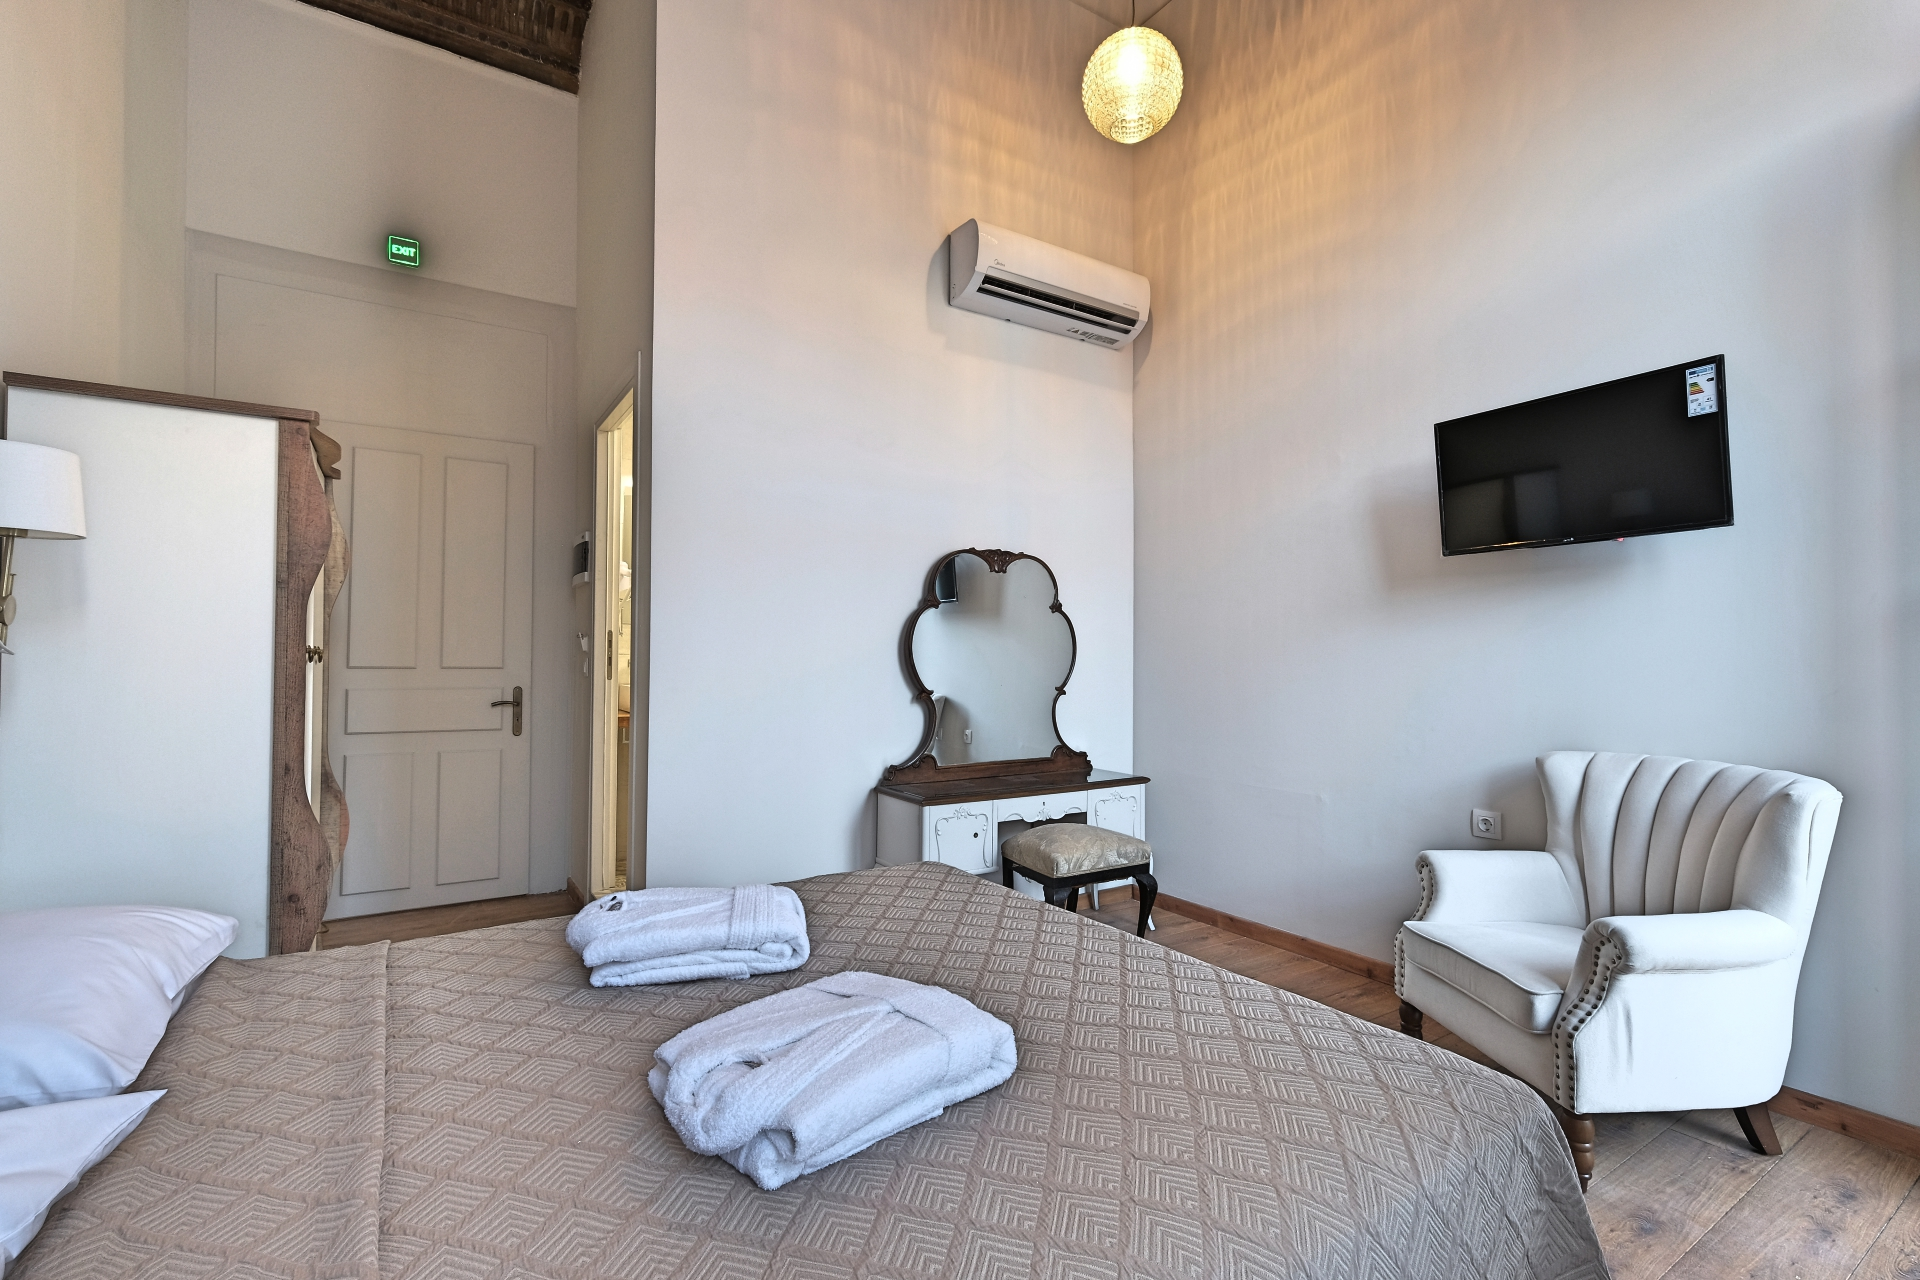 Double Room with Balcony Room - Agora Residence - Hotel in Chios